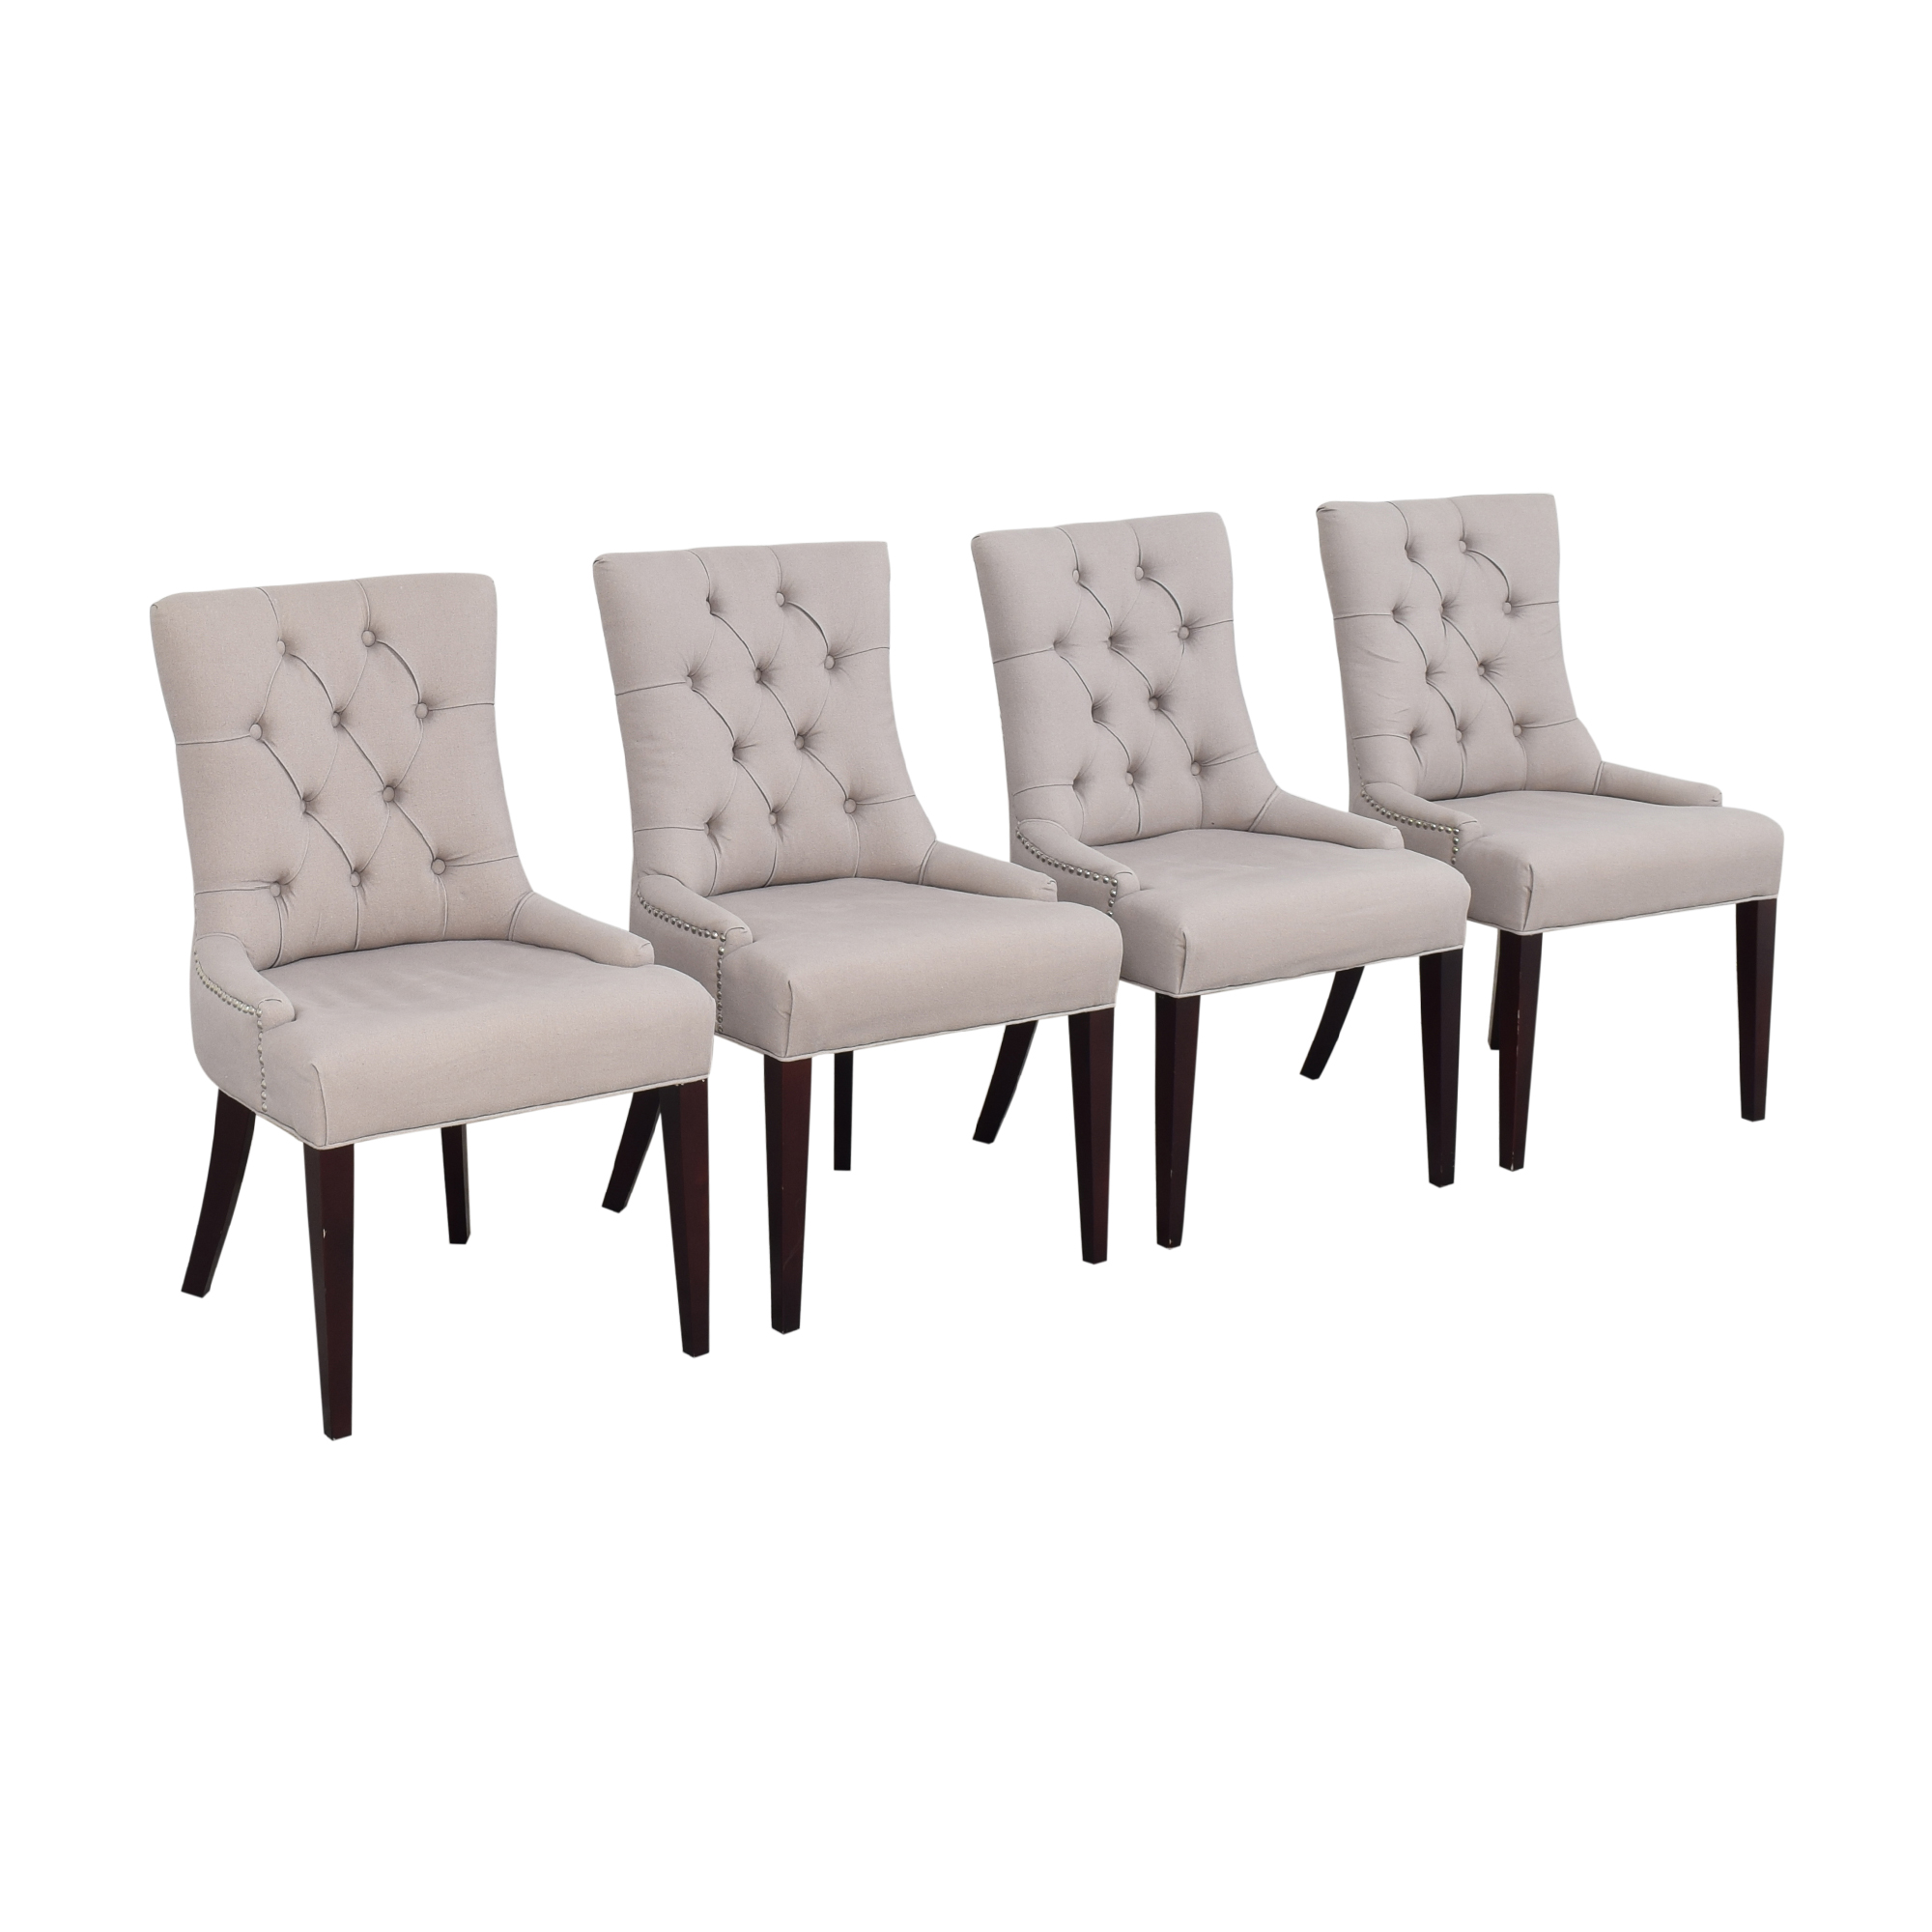 Safavieh Safavieh Nimes Tufted Dining Chairs gray and brown